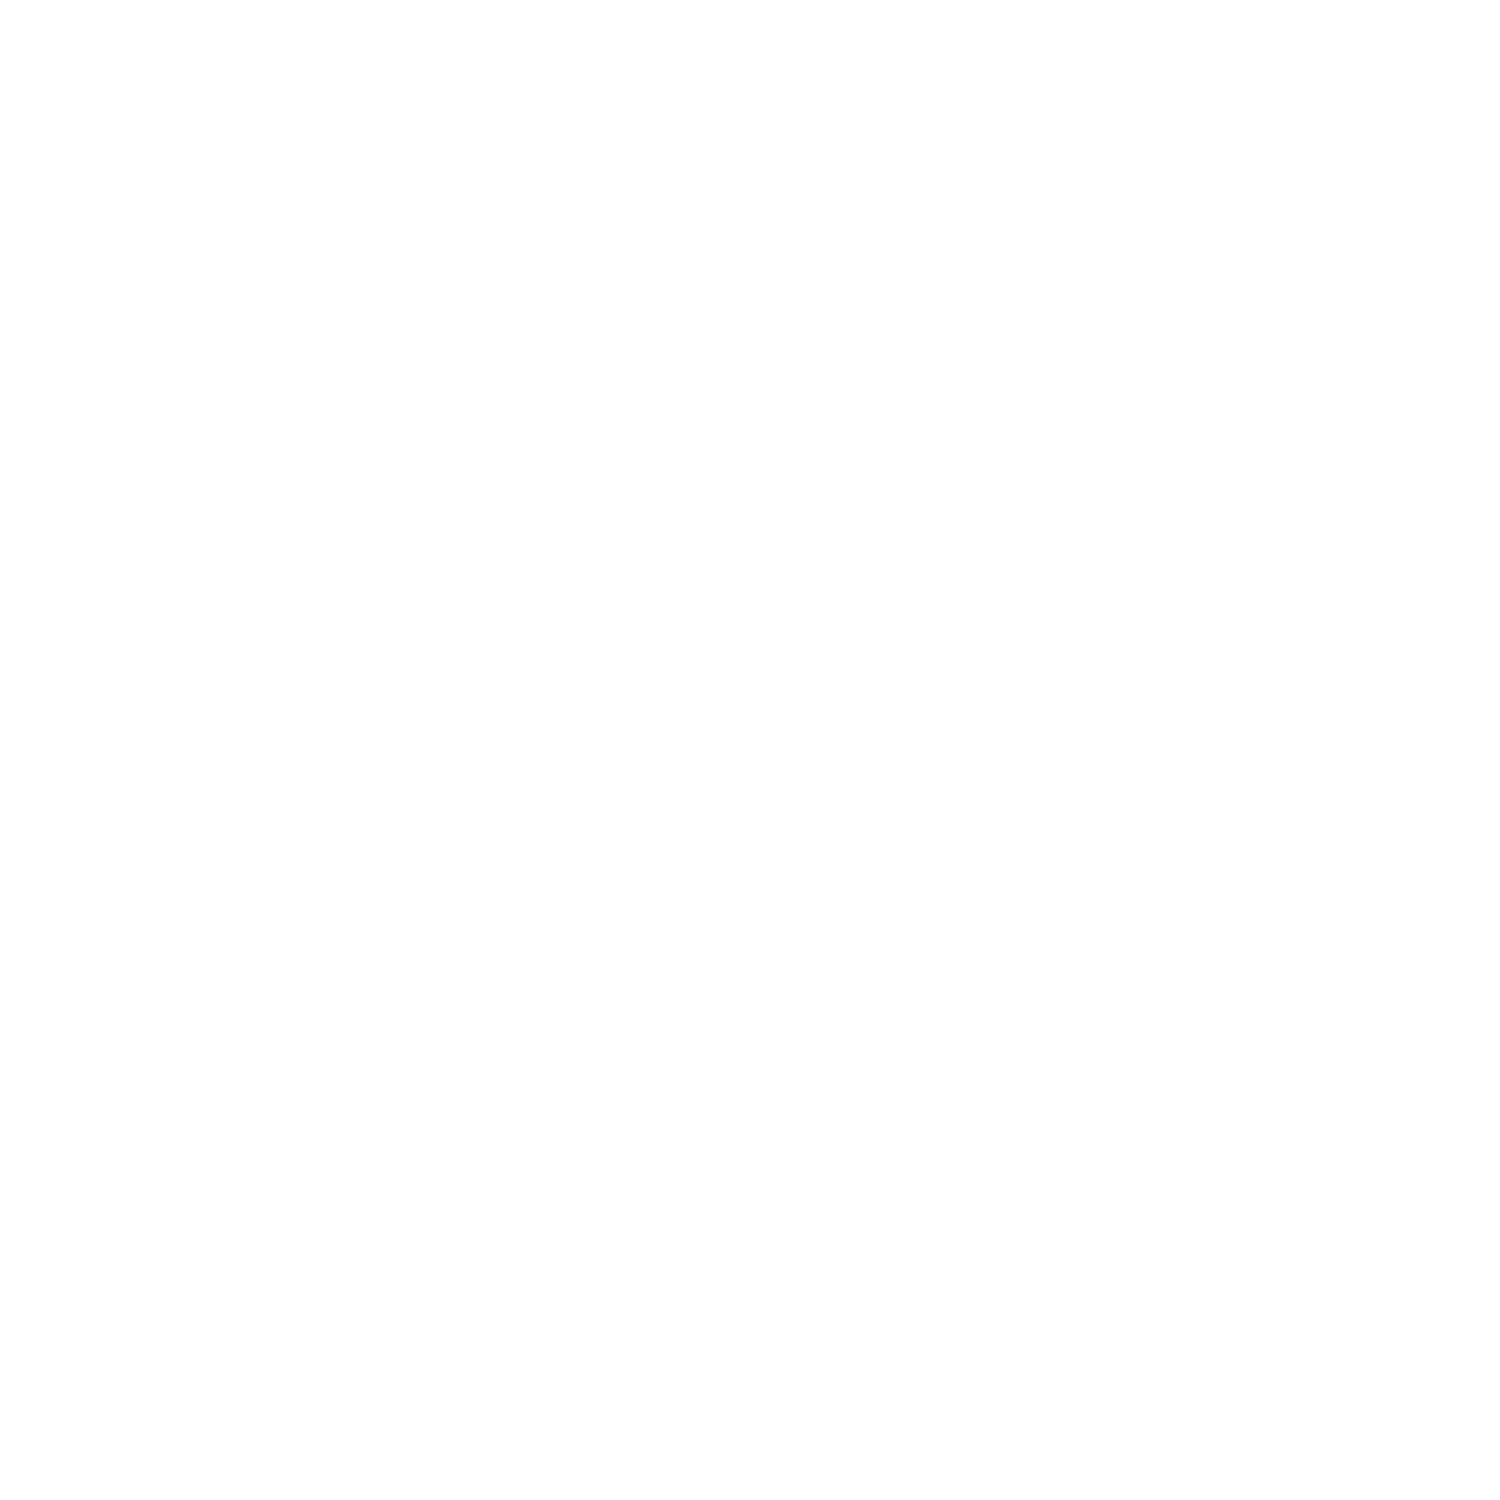 SCARLETT ENTERPRISES